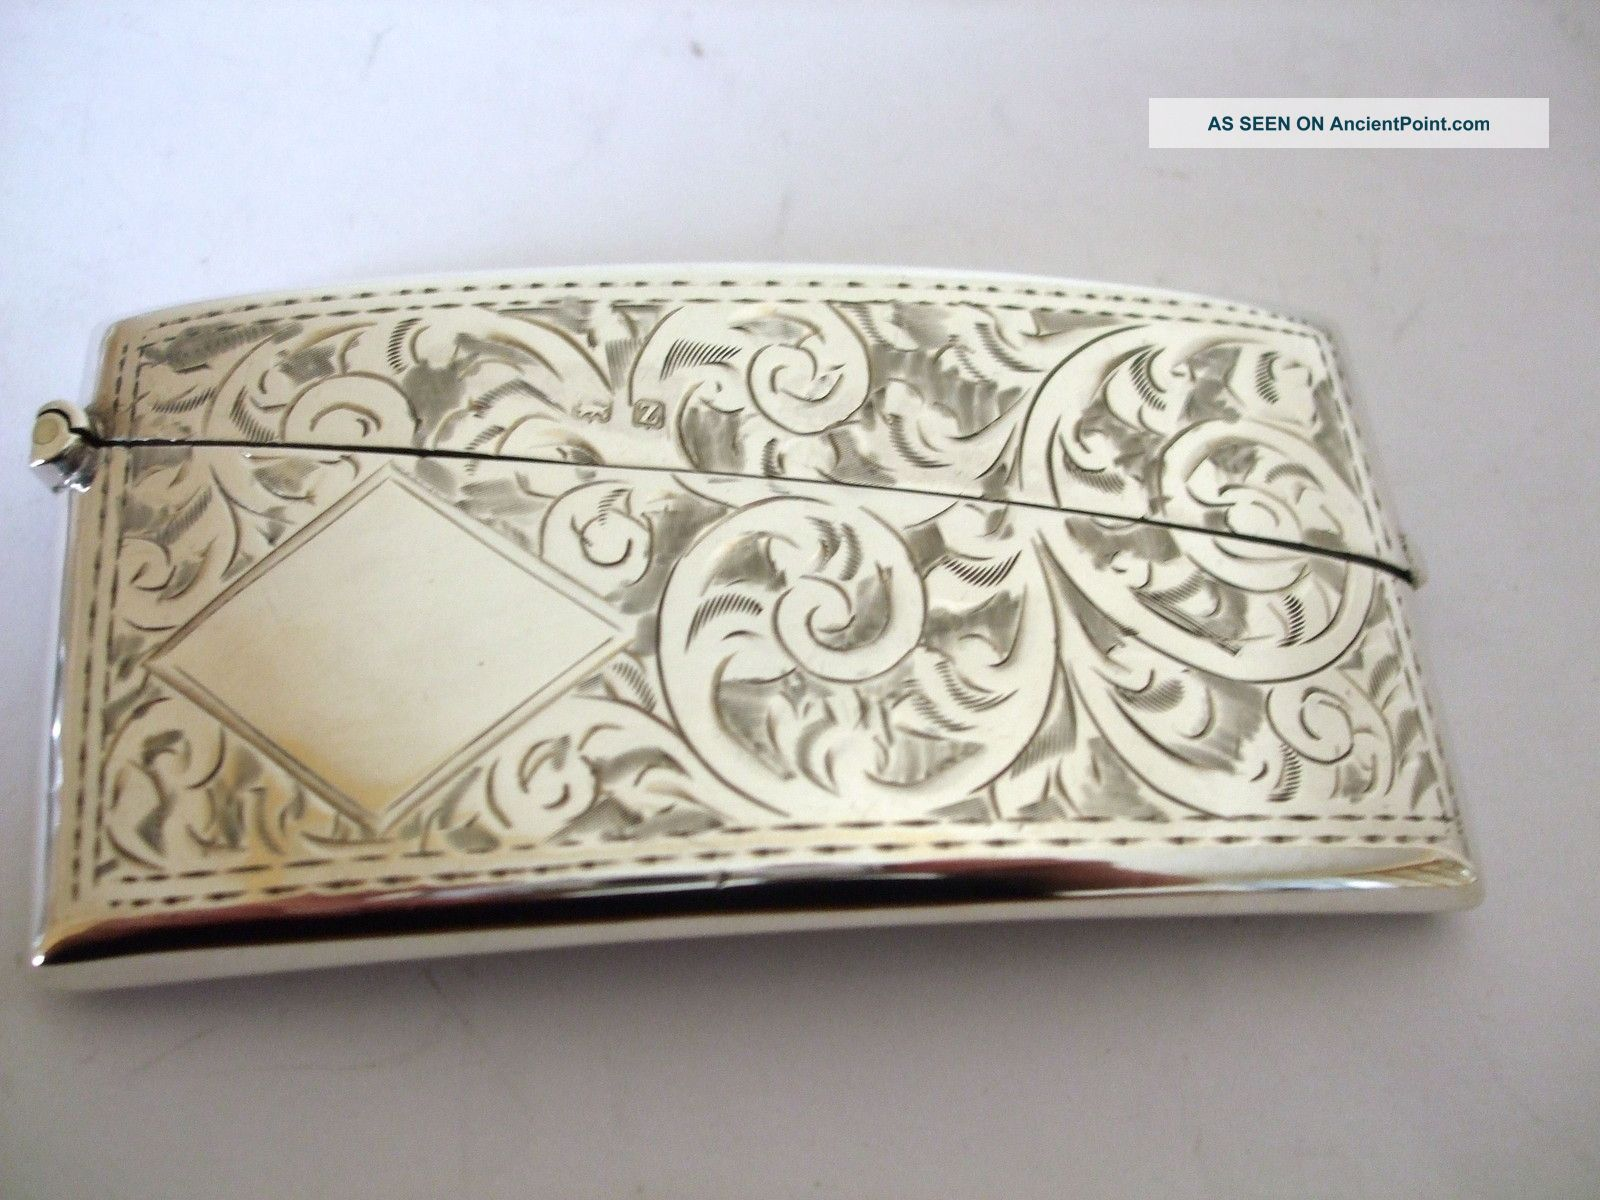 Vintage Silver Visiting Card Case Swag And Swirl Decoration Art Deco Hm 1924 Card Cases photo